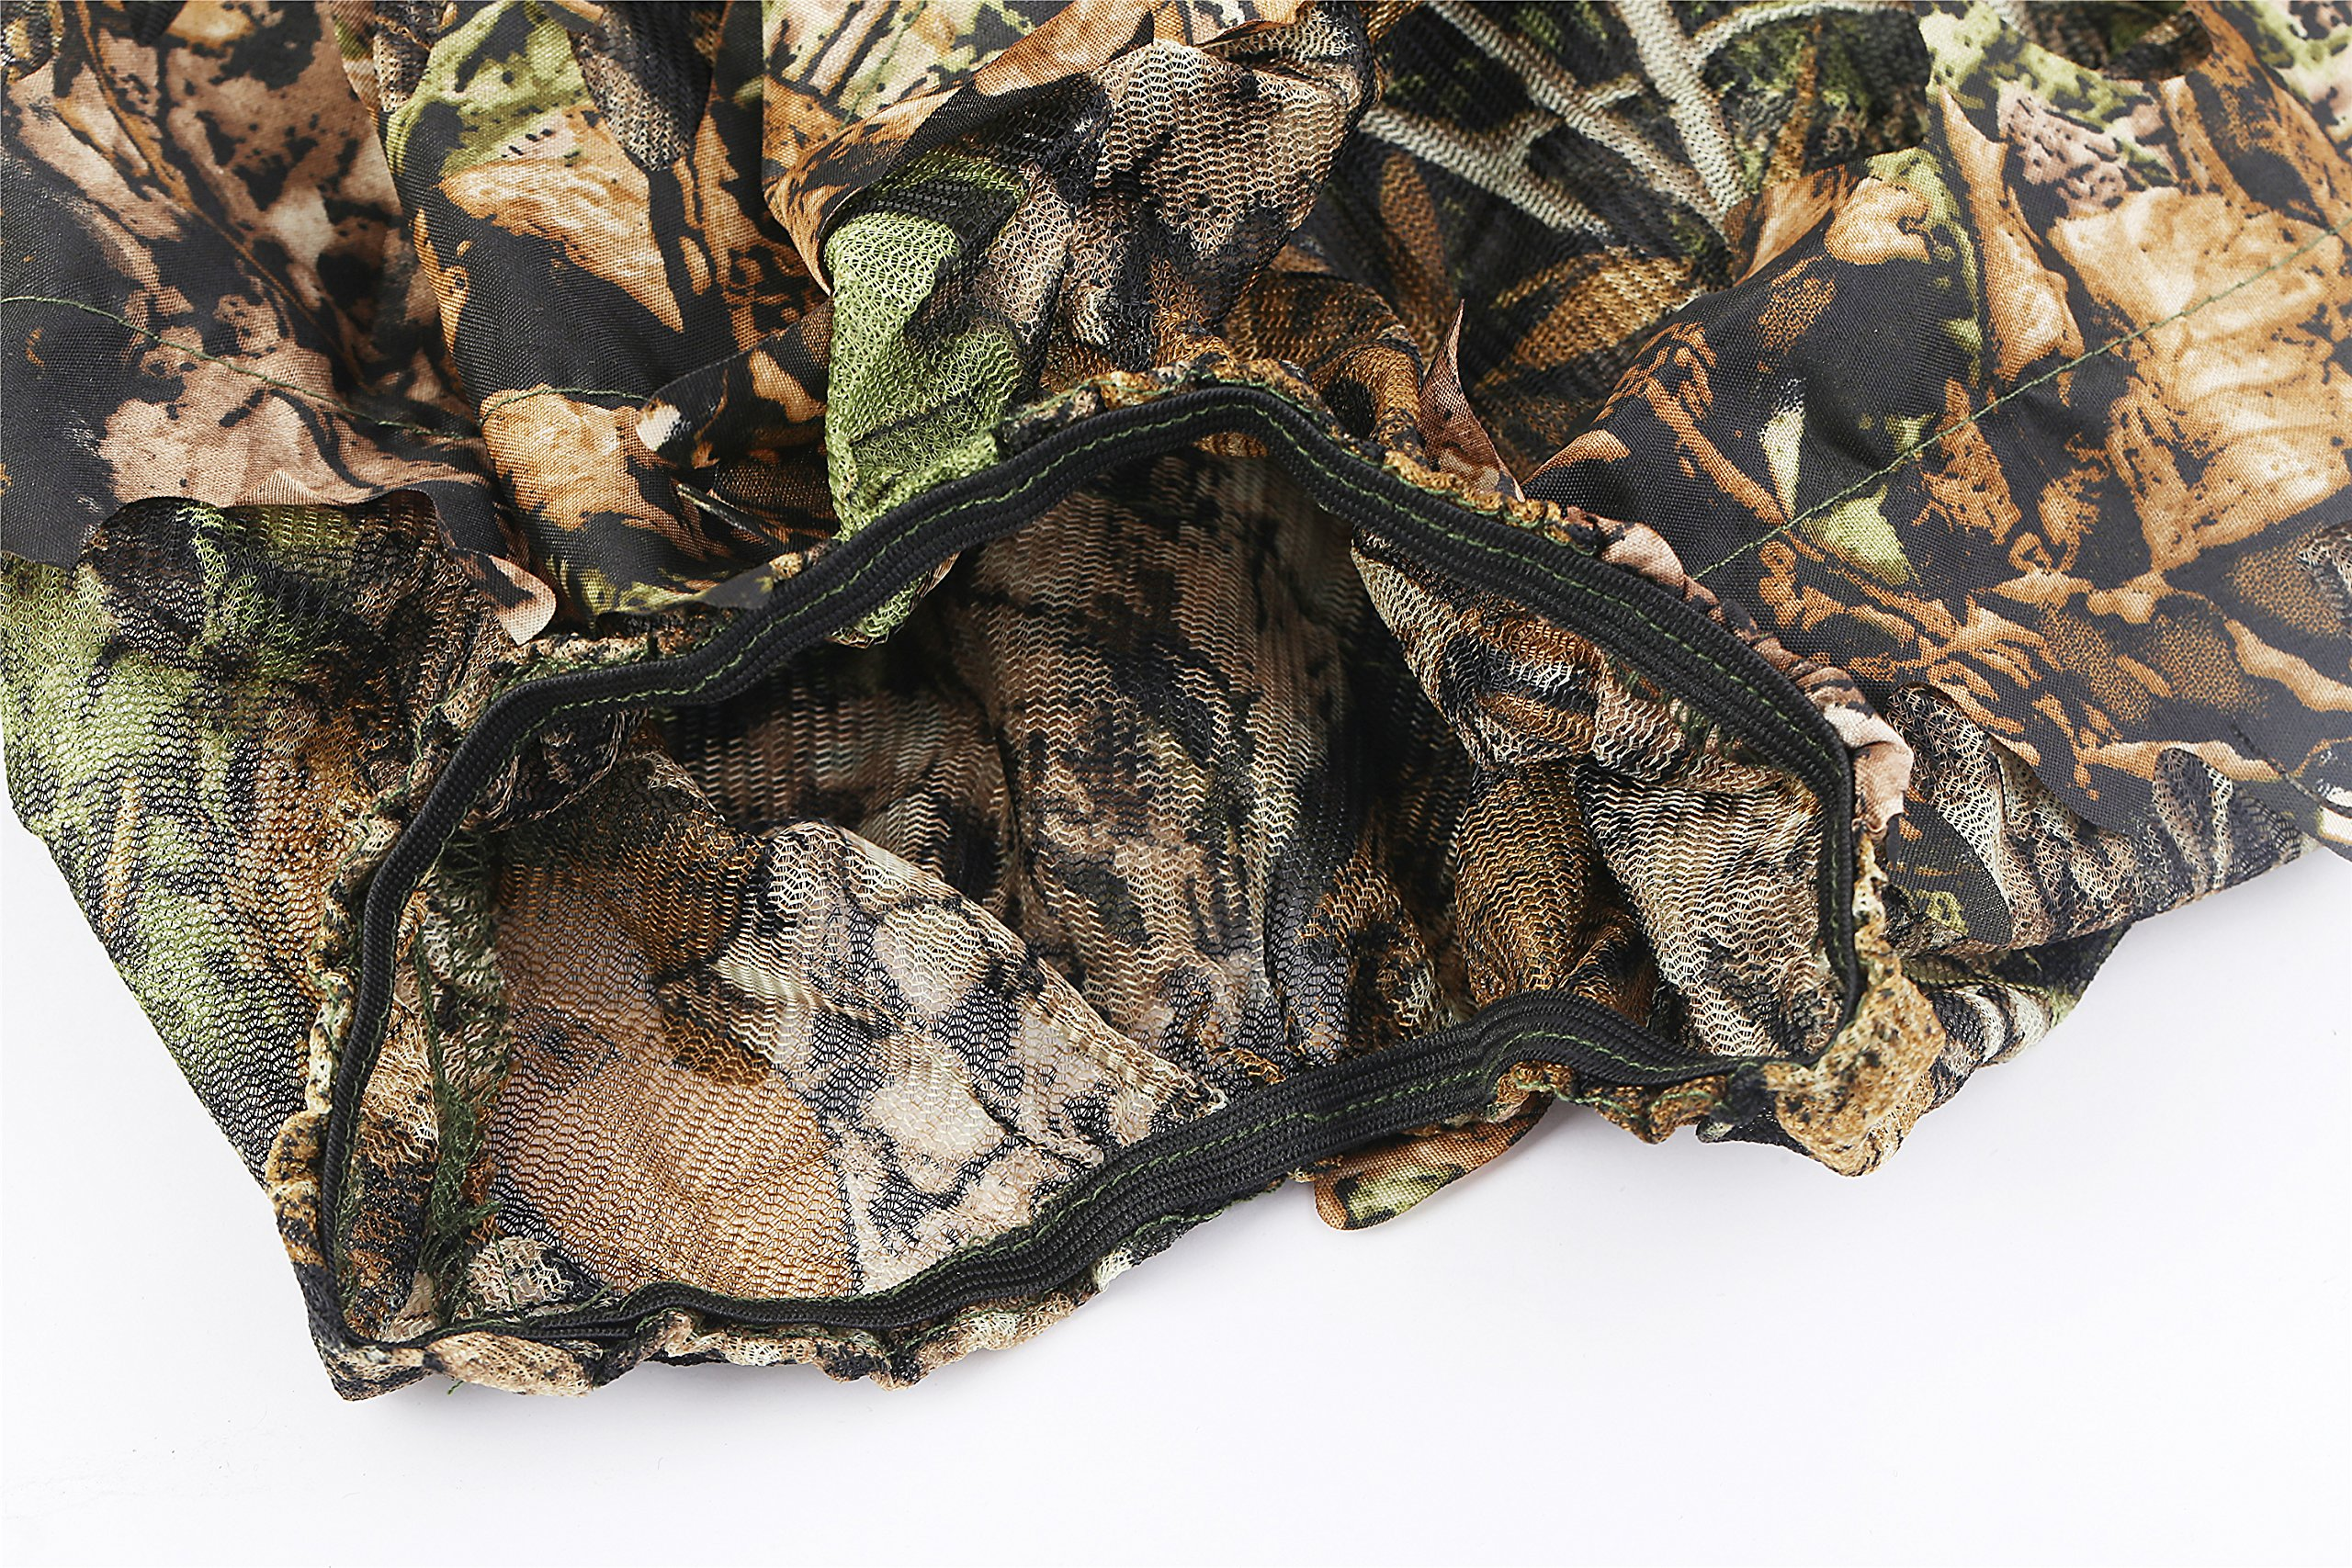 ABCAMO Light Weight Hunting Camouflage Full Cover 3D Leafy Face Mask by ABCAMO (Image #5)